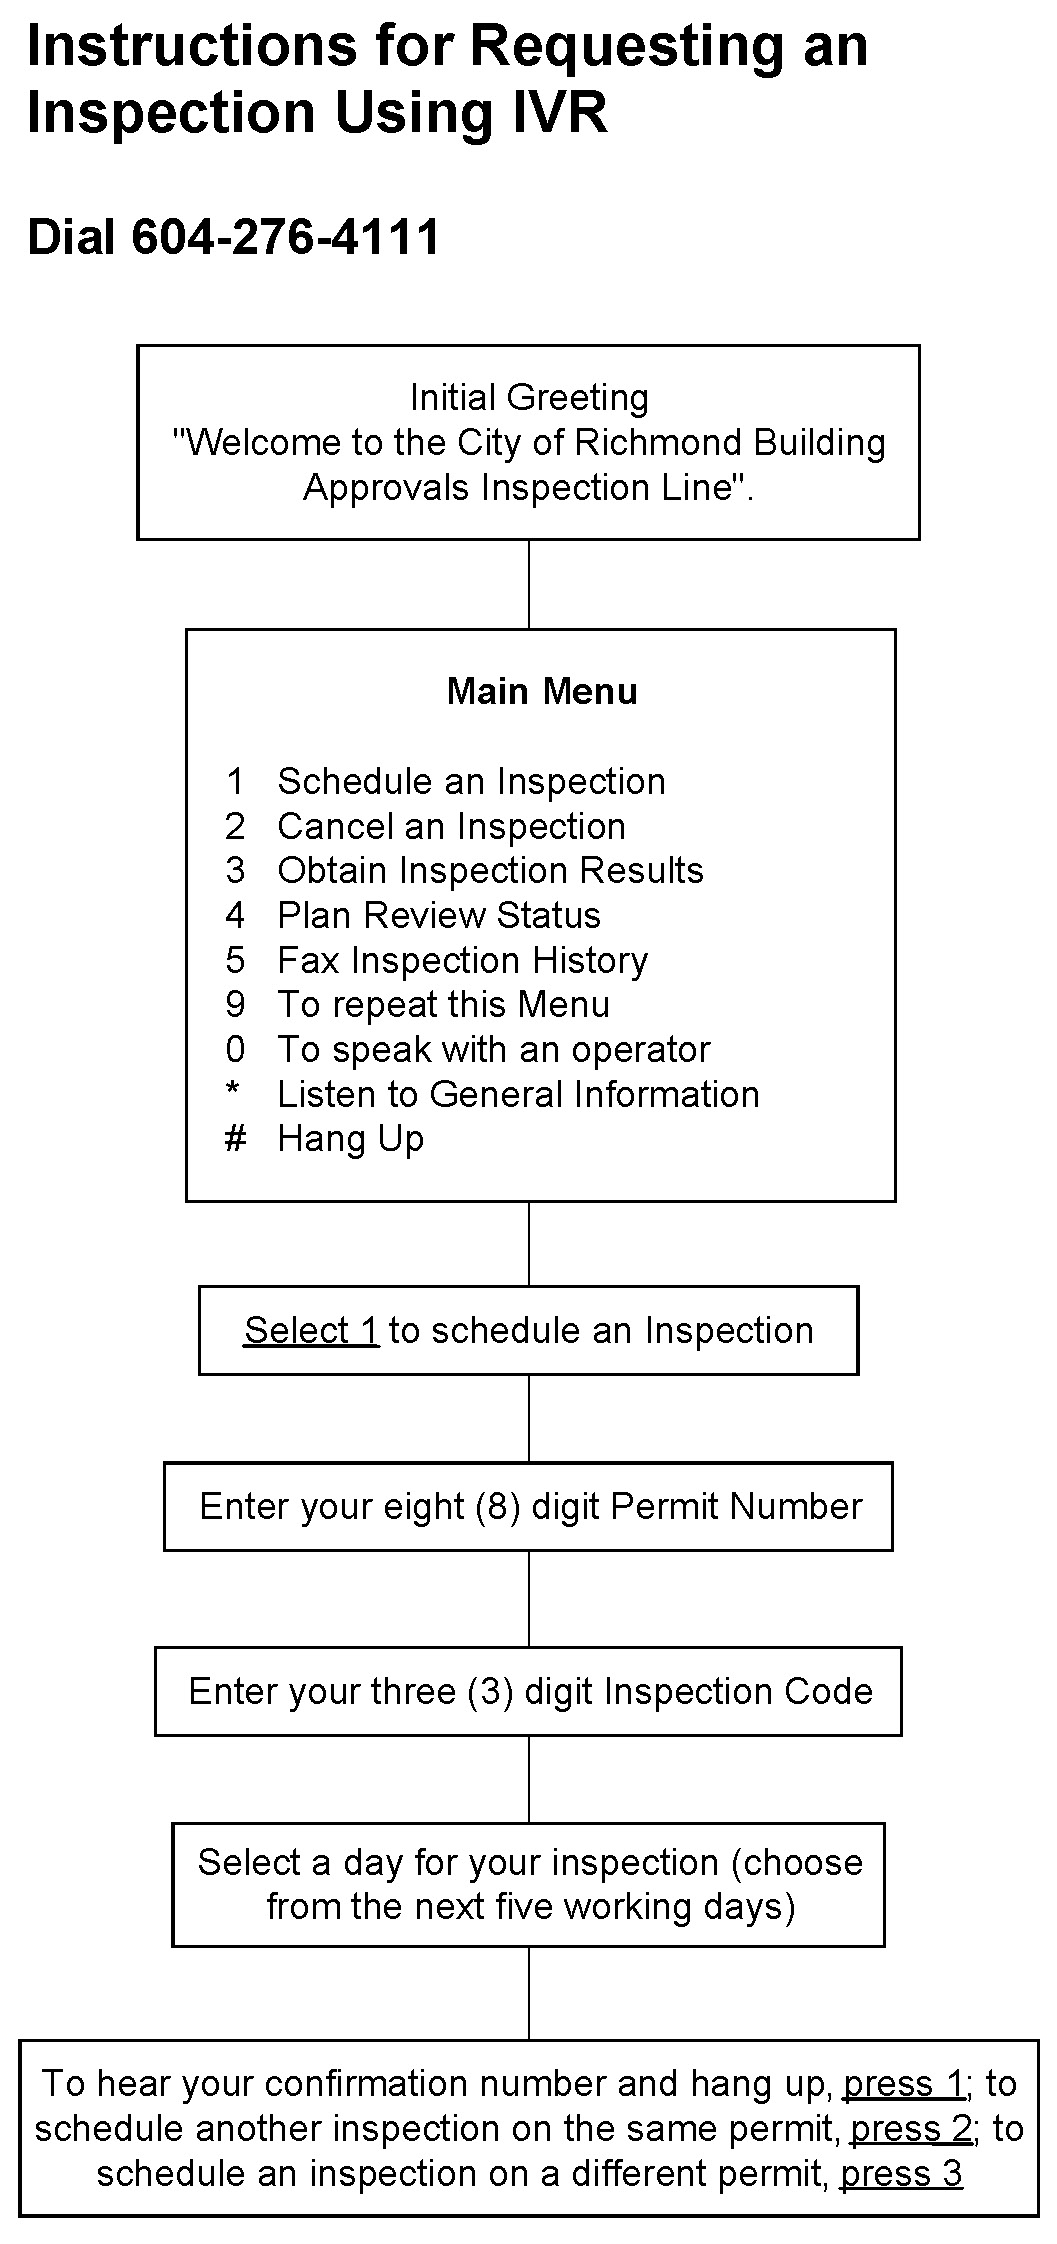 Instructions for Requesting an Inspection Using IVR Flowchart